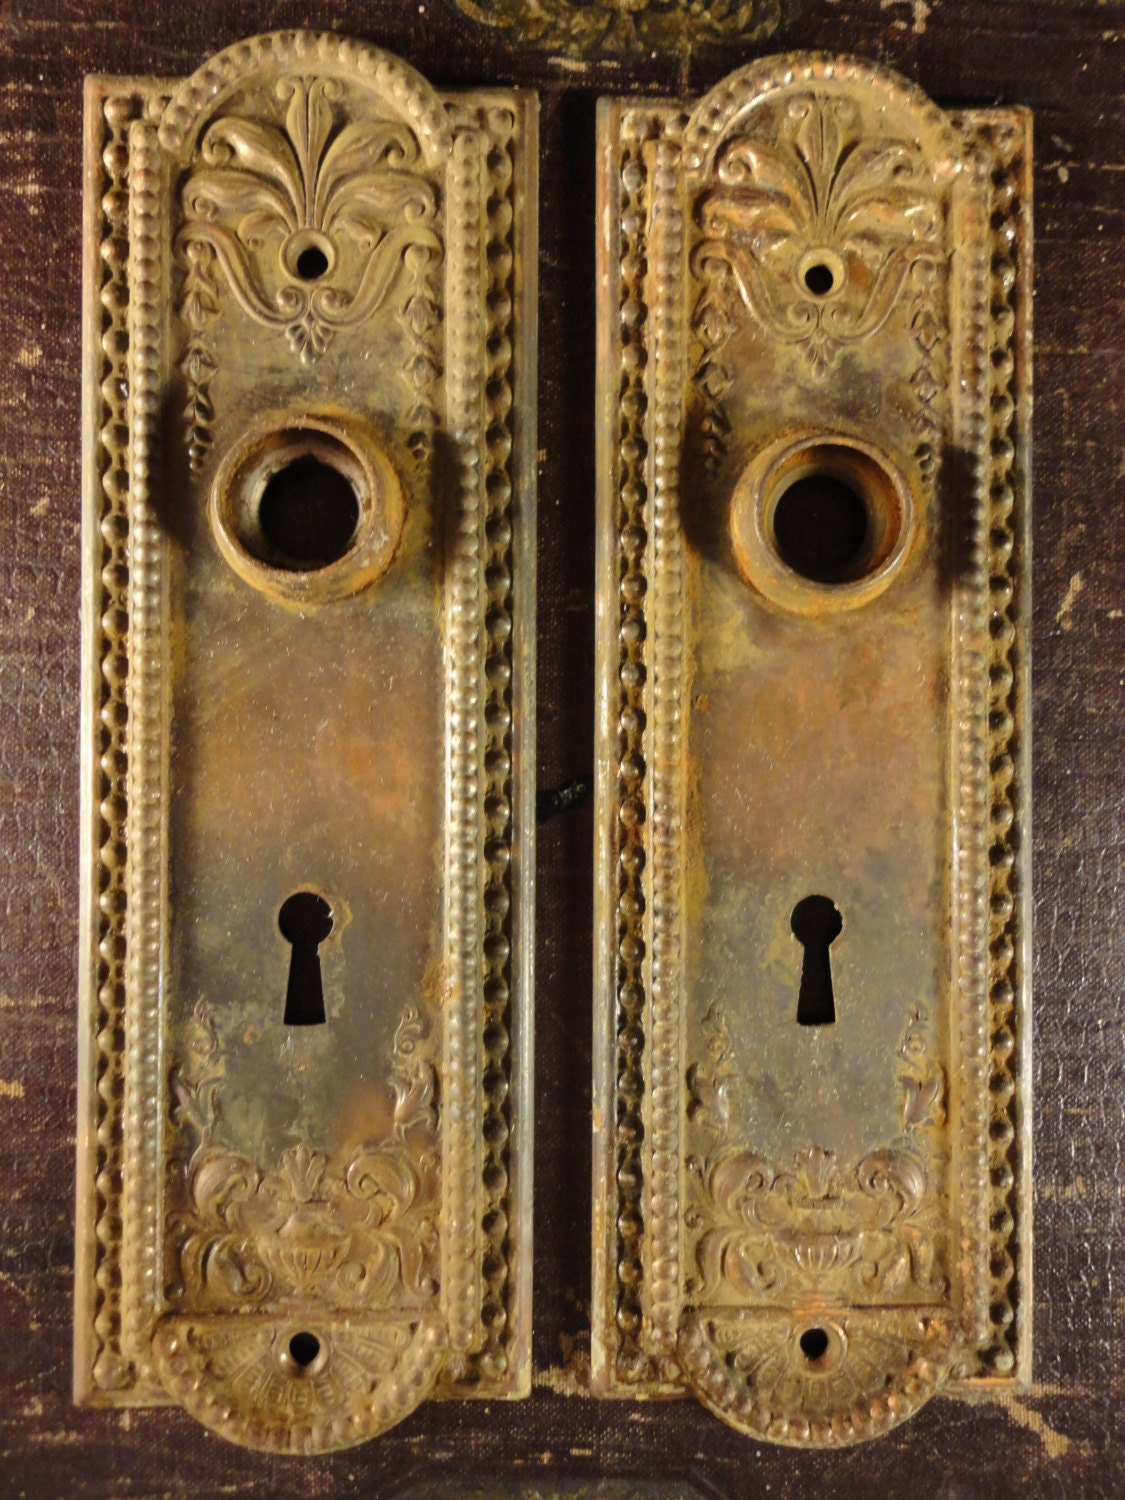 Ornate Antique Brass Door Knob Backplates